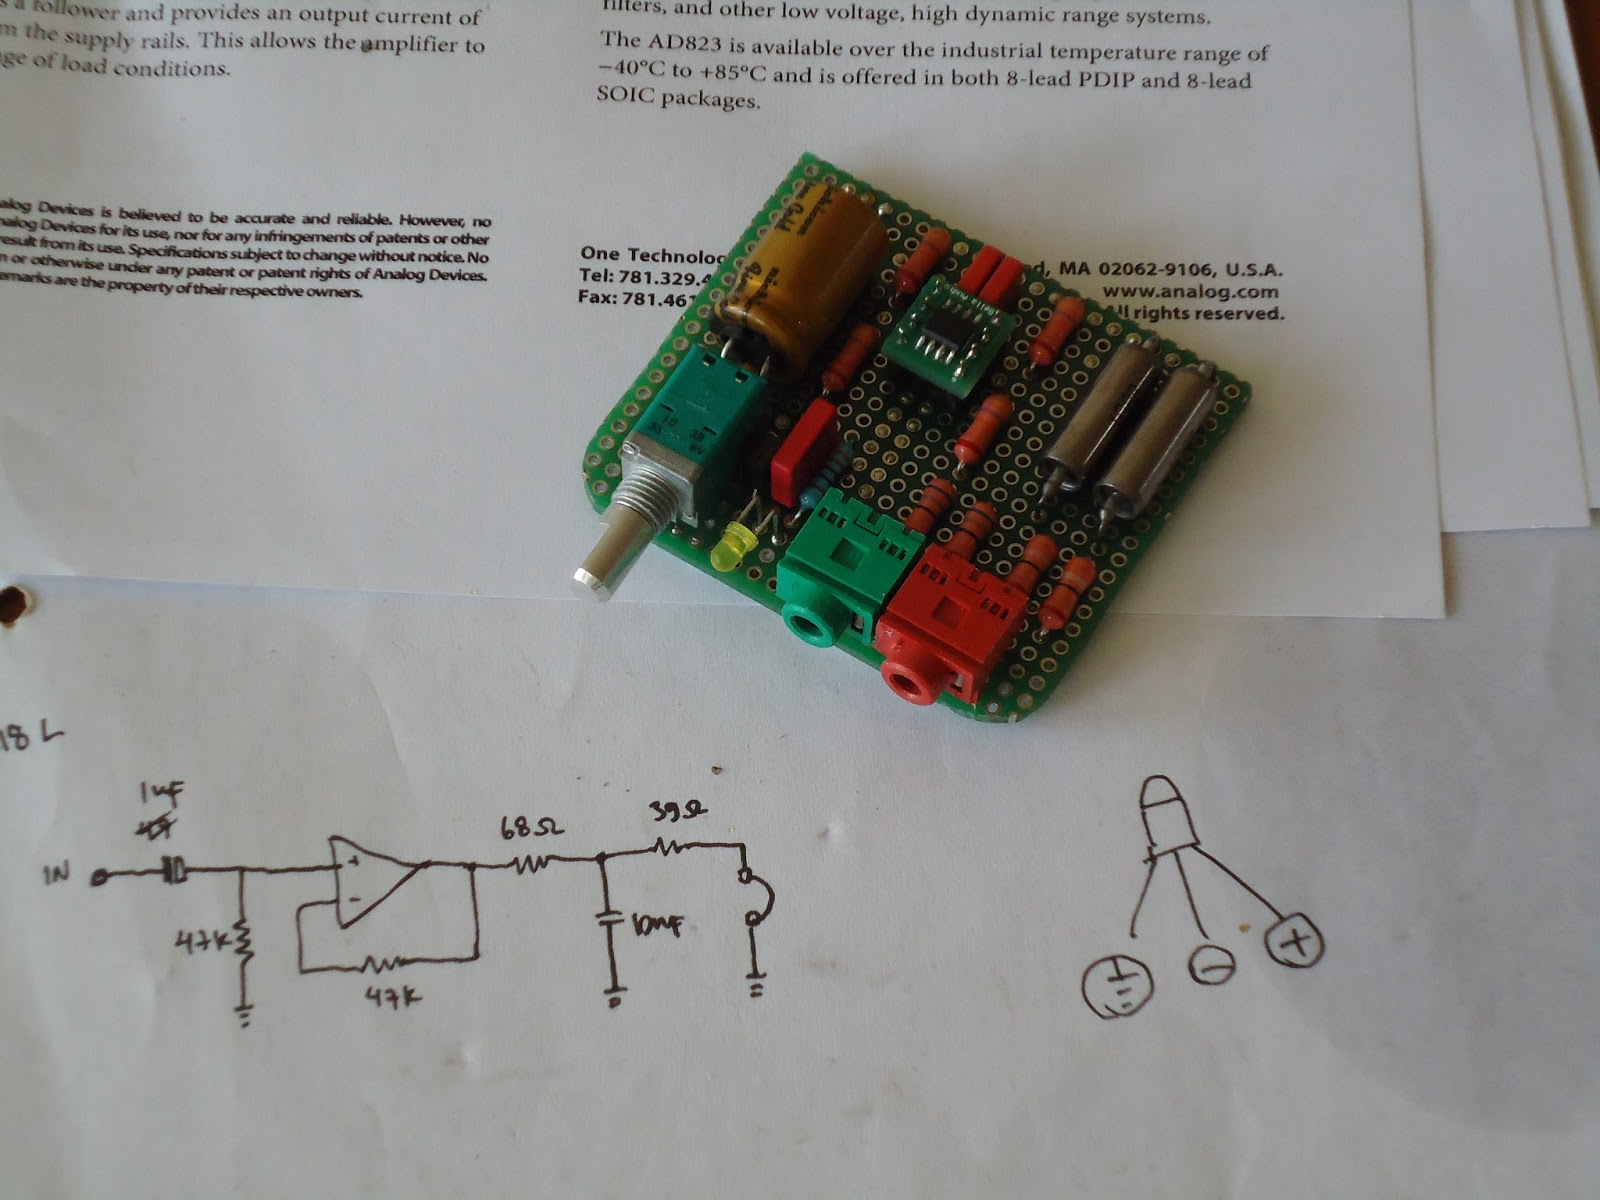 The Orronoco Audio Diy Half Gain Headphone Amplifier Project Operational Schematic Building Concept Op Amp Will Act Just Like A Buffer I Put 47k Resistor Across Output And Inverting Input Without Ground